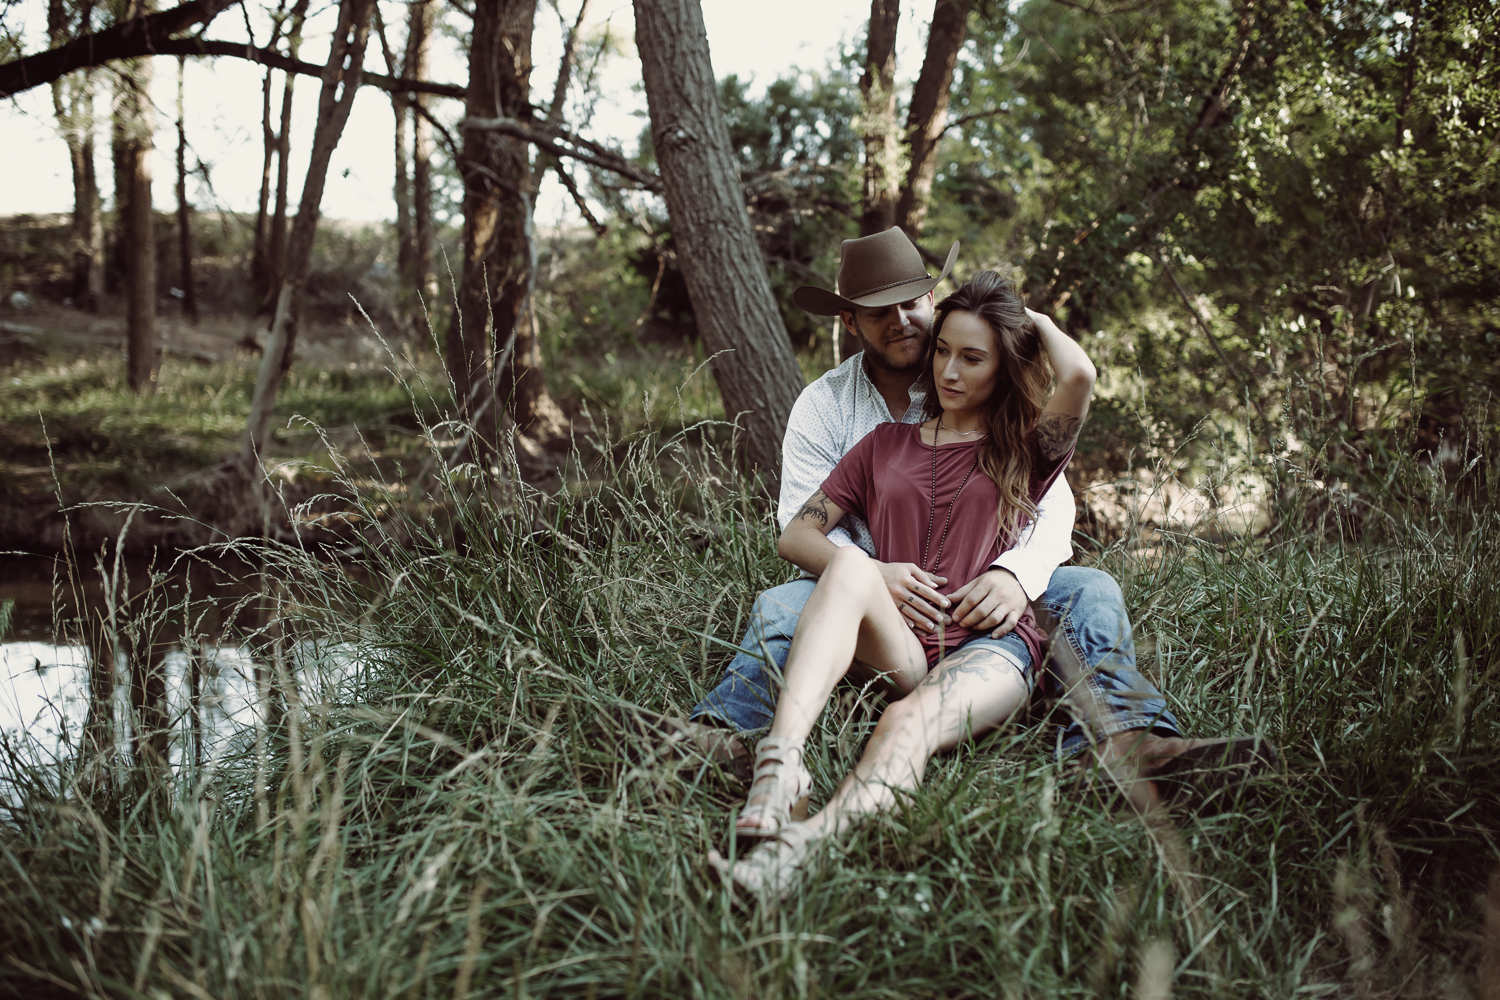 laura-beck-photography-best-lubbock-texas-couples-love-lifestyle-engagement-wedding-anniversary-portraits-51.jpg